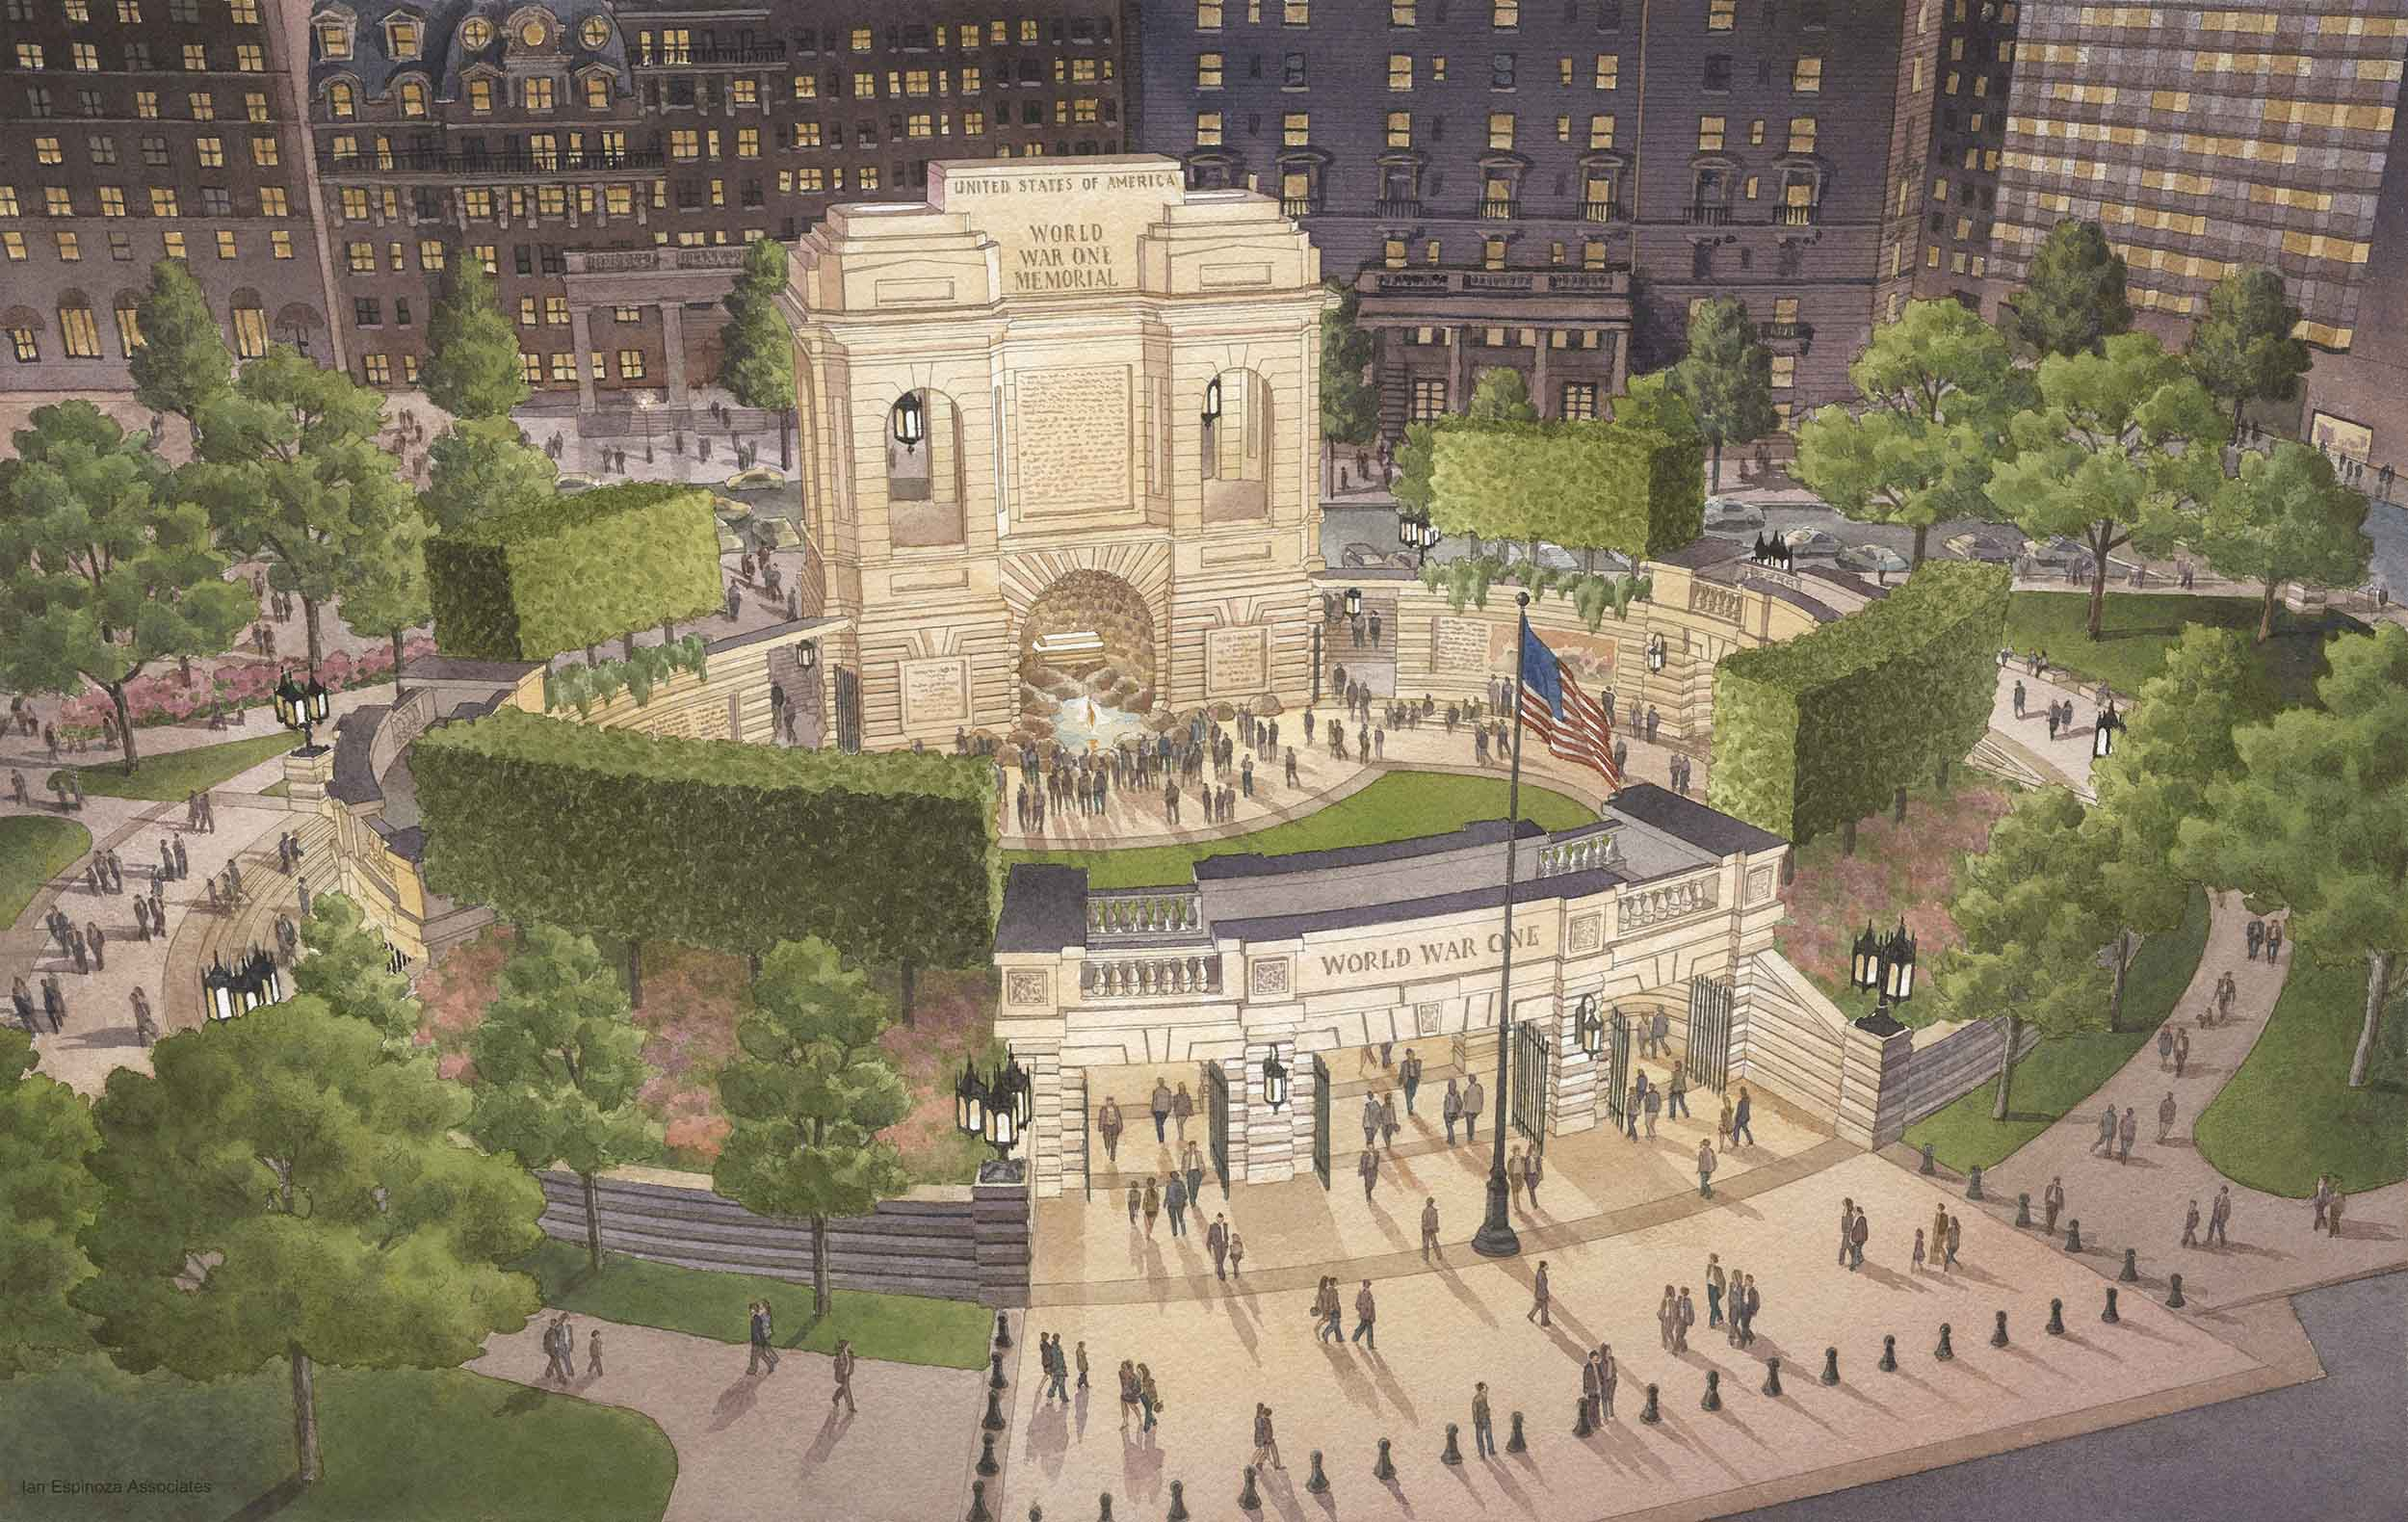 Design by Kimmel Studio Architects Shortlisted as Finalist for National War Memorial